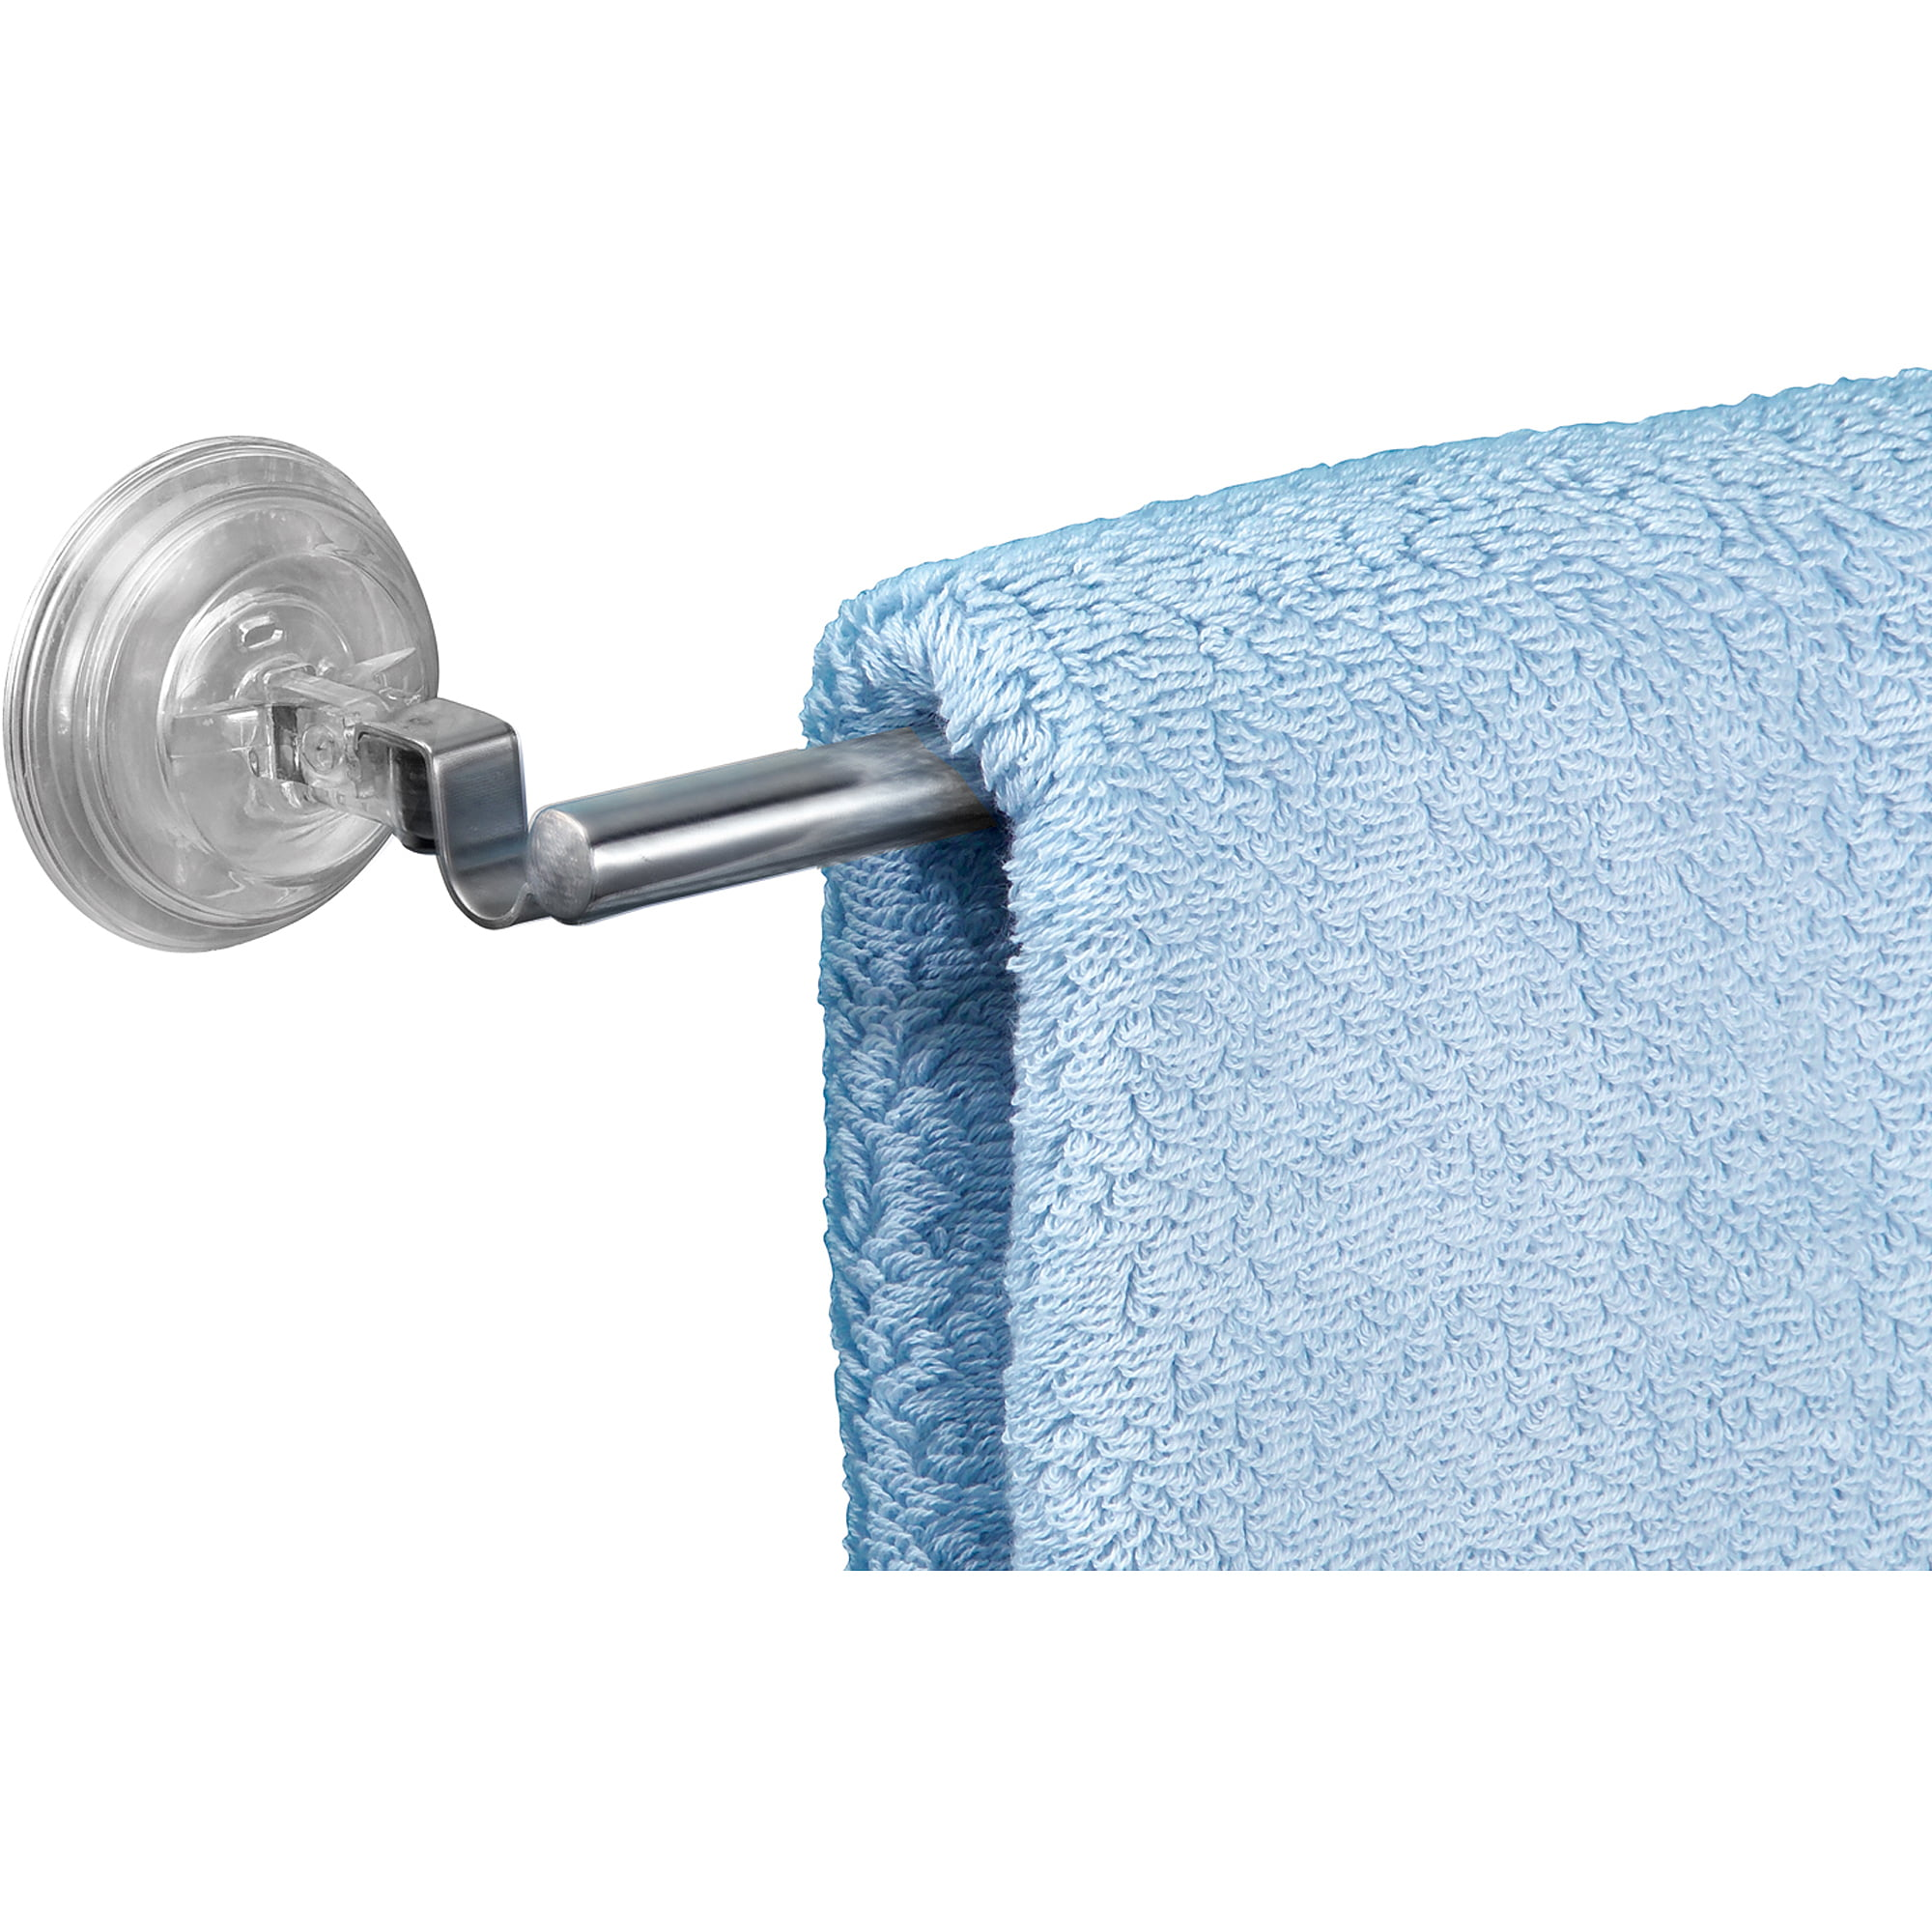 InterDesign Reo Power Lock Suction Towel Bar for Bathroom ...